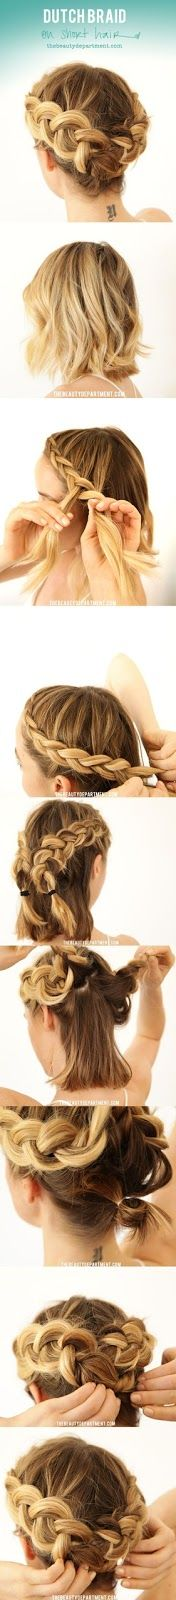 Nice I'll show you how we did dutch braid on short hair, you could really see detail in the larger individual photos on my normal tutorial. The post I'll show you how we did dutch braid on . Braids For Short Hair, Braid Hair, Short Hair Crown Braid, Boho Braid, Medium Hair Braids, Blonde Braids, Hair Images, Hair Day, Hair Looks